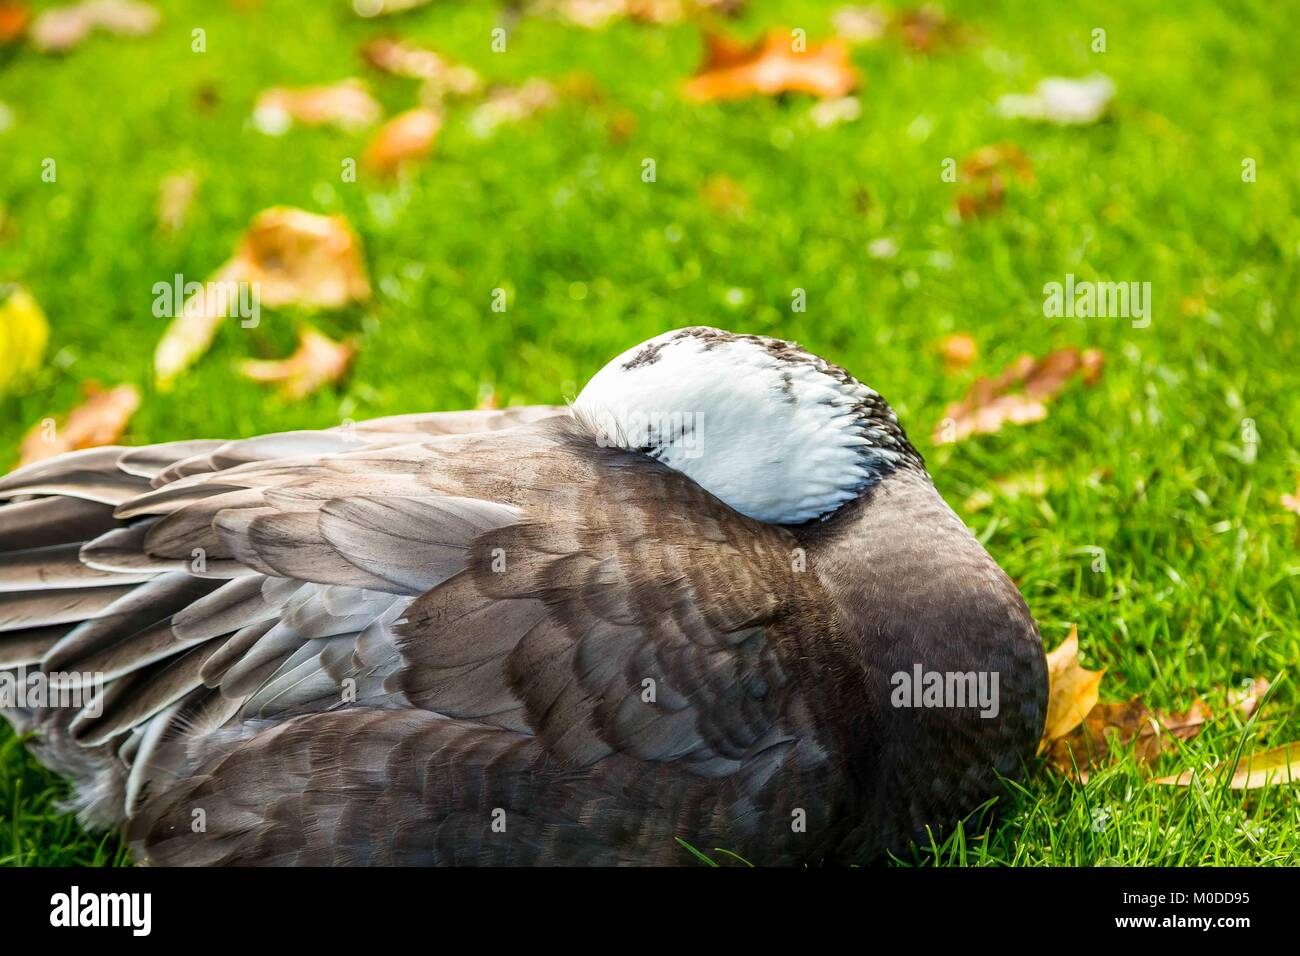 A goose hiding his head in his feathers to sleep or slumber in peace. - Stock Image